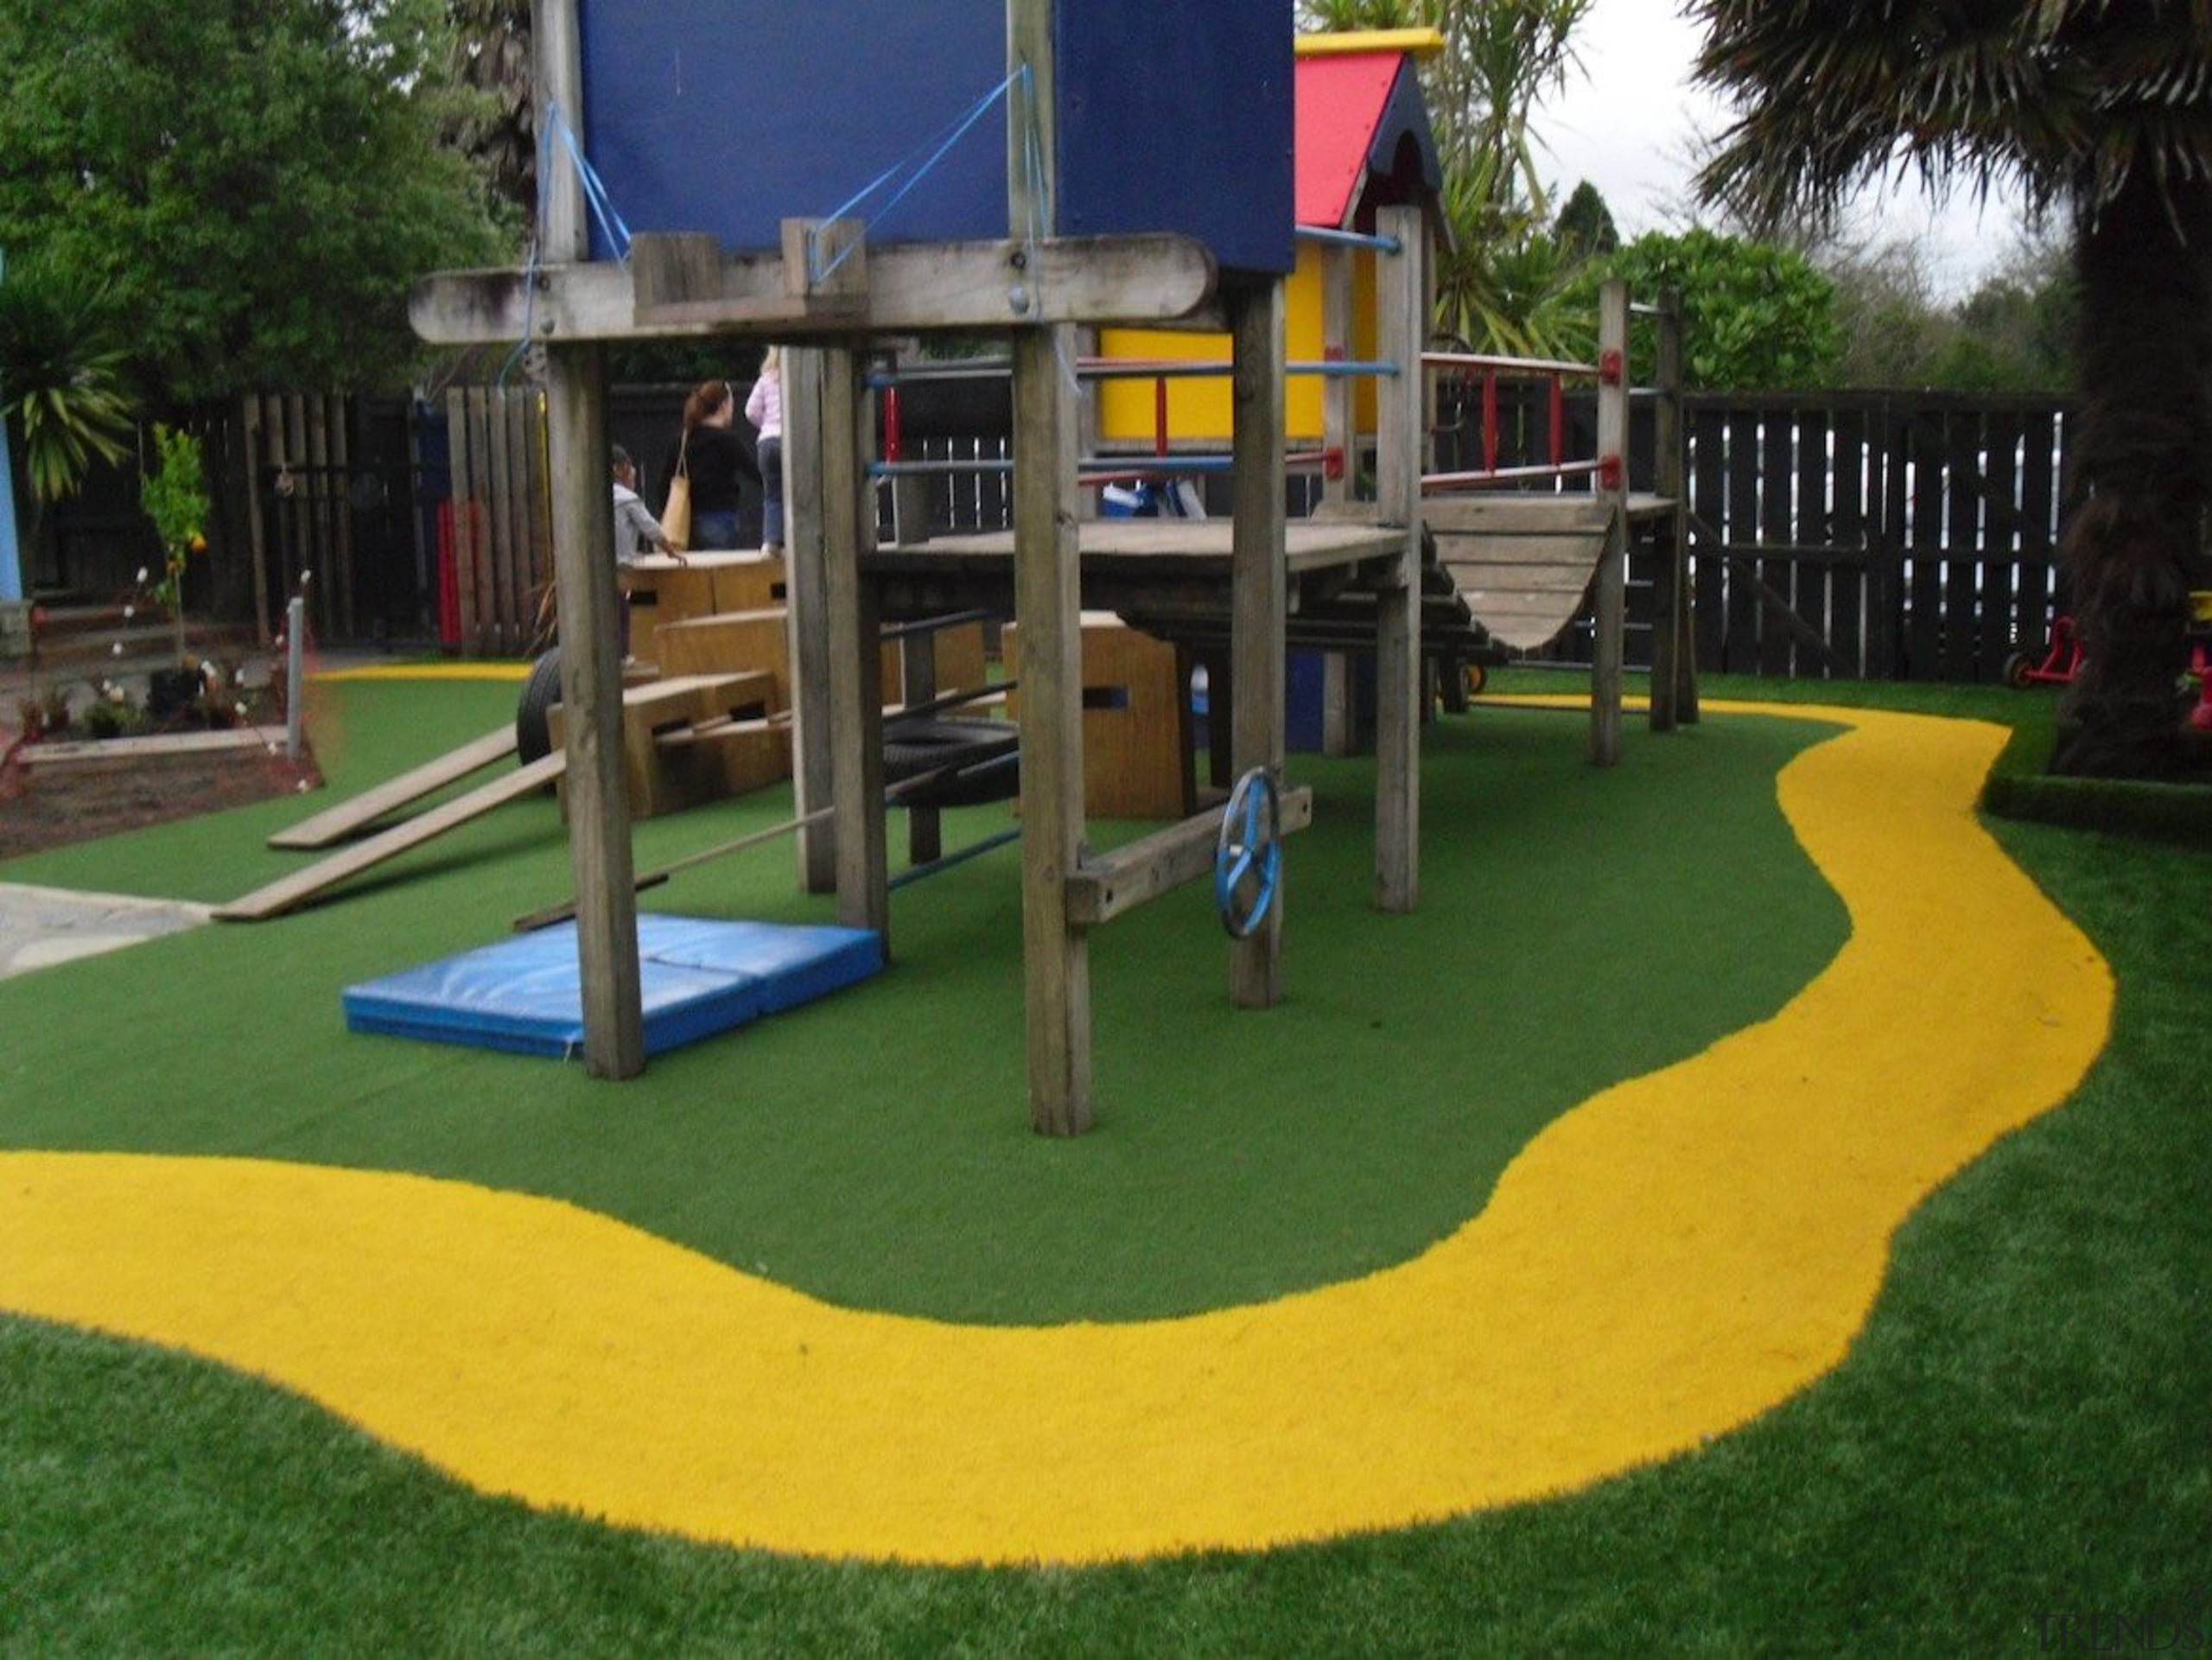 Pre-school, primary & seconday education - Pre-school, primary chute, grass, lawn, leisure, miniature golf, outdoor play equipment, plant, play, playground, public space, recreation, green